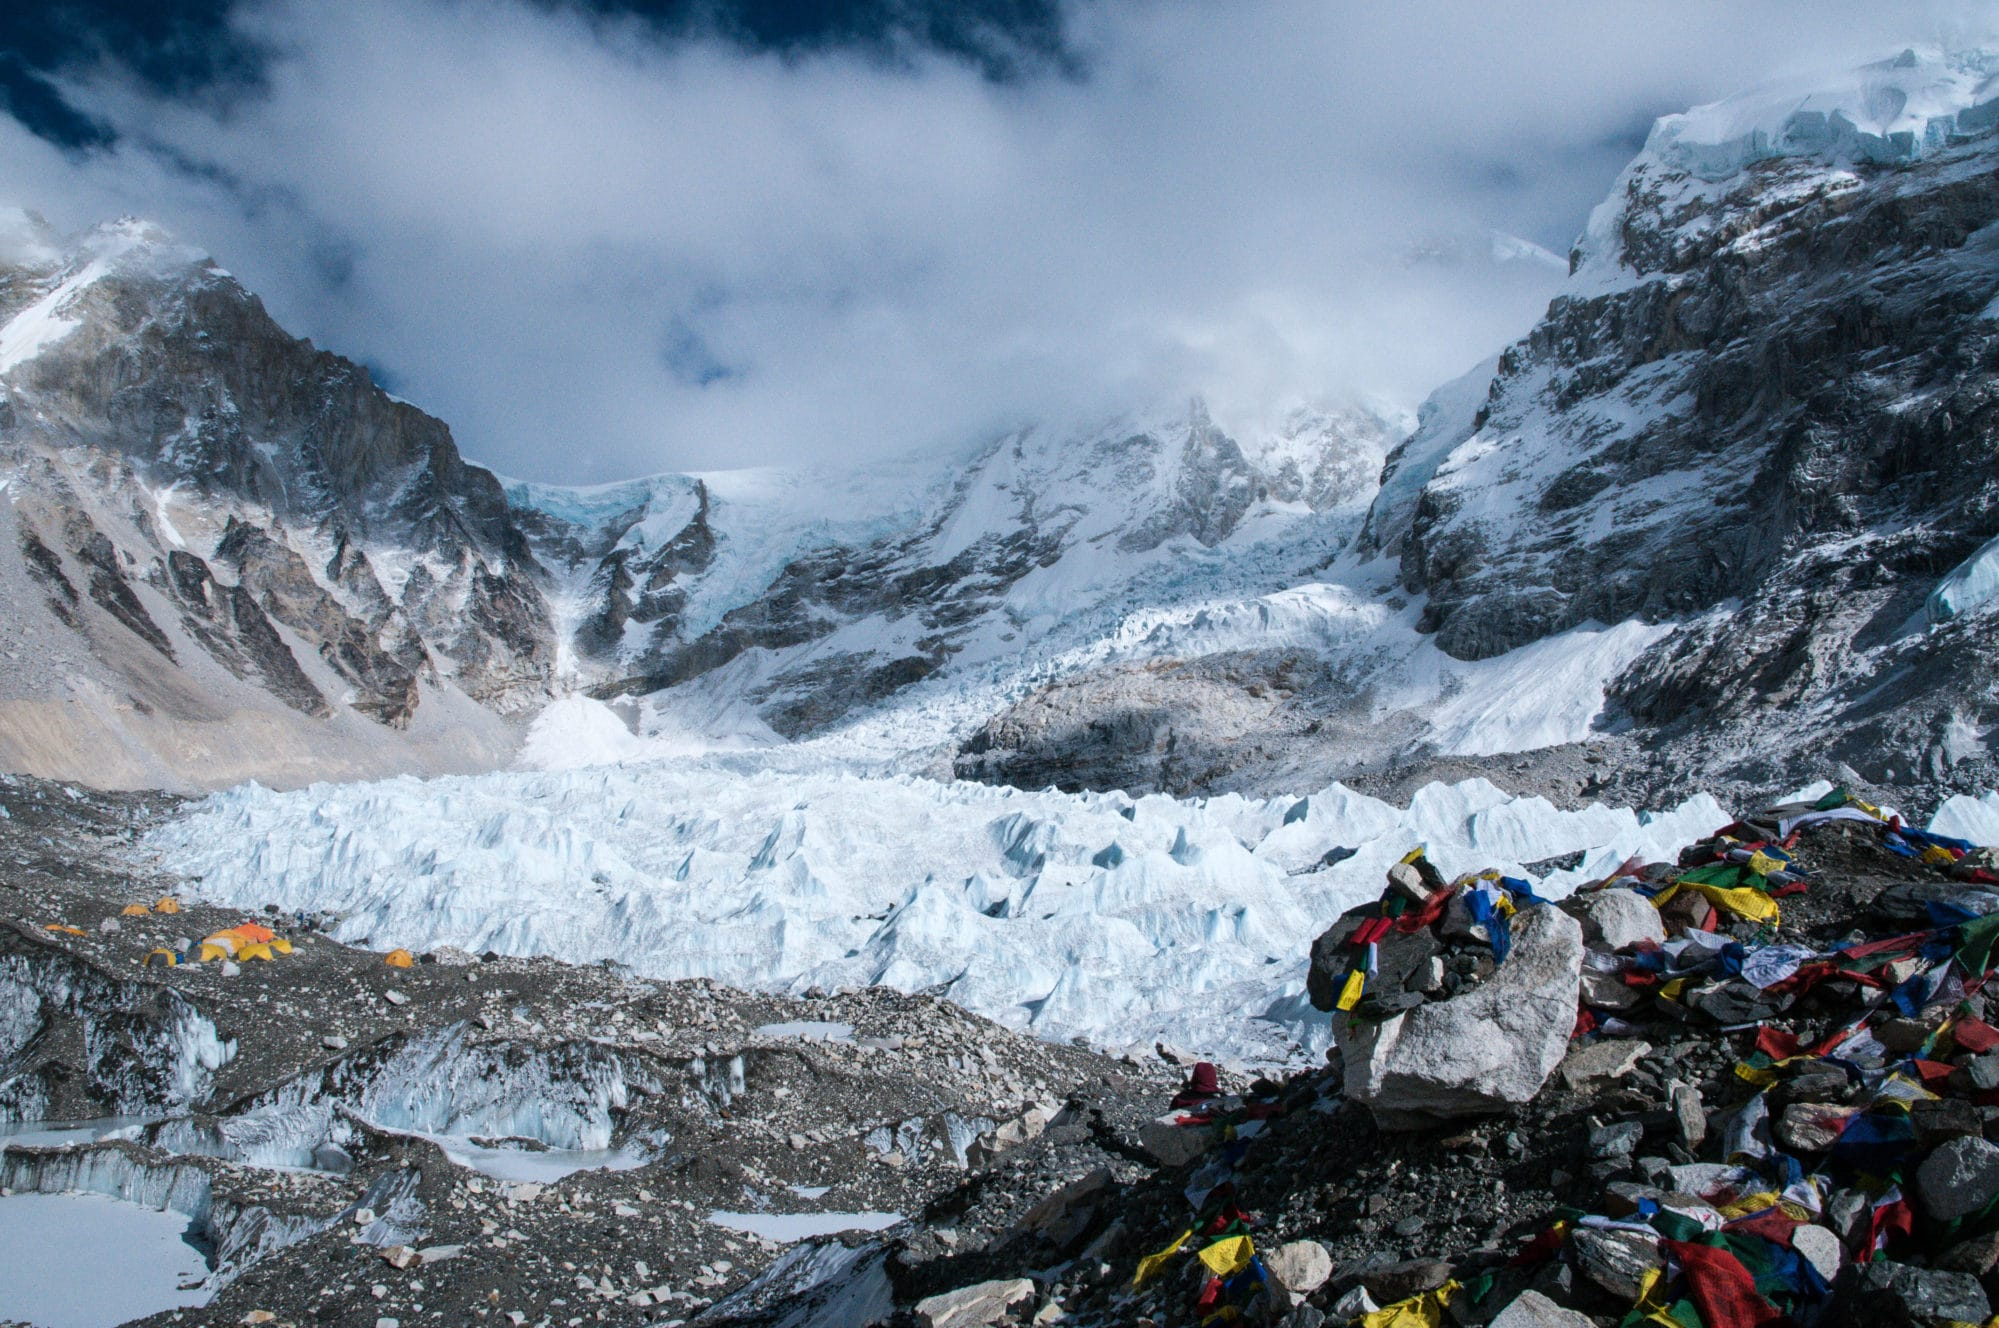 Mount Everest Base Camp with Spanish climbing party attempting a winter ascent